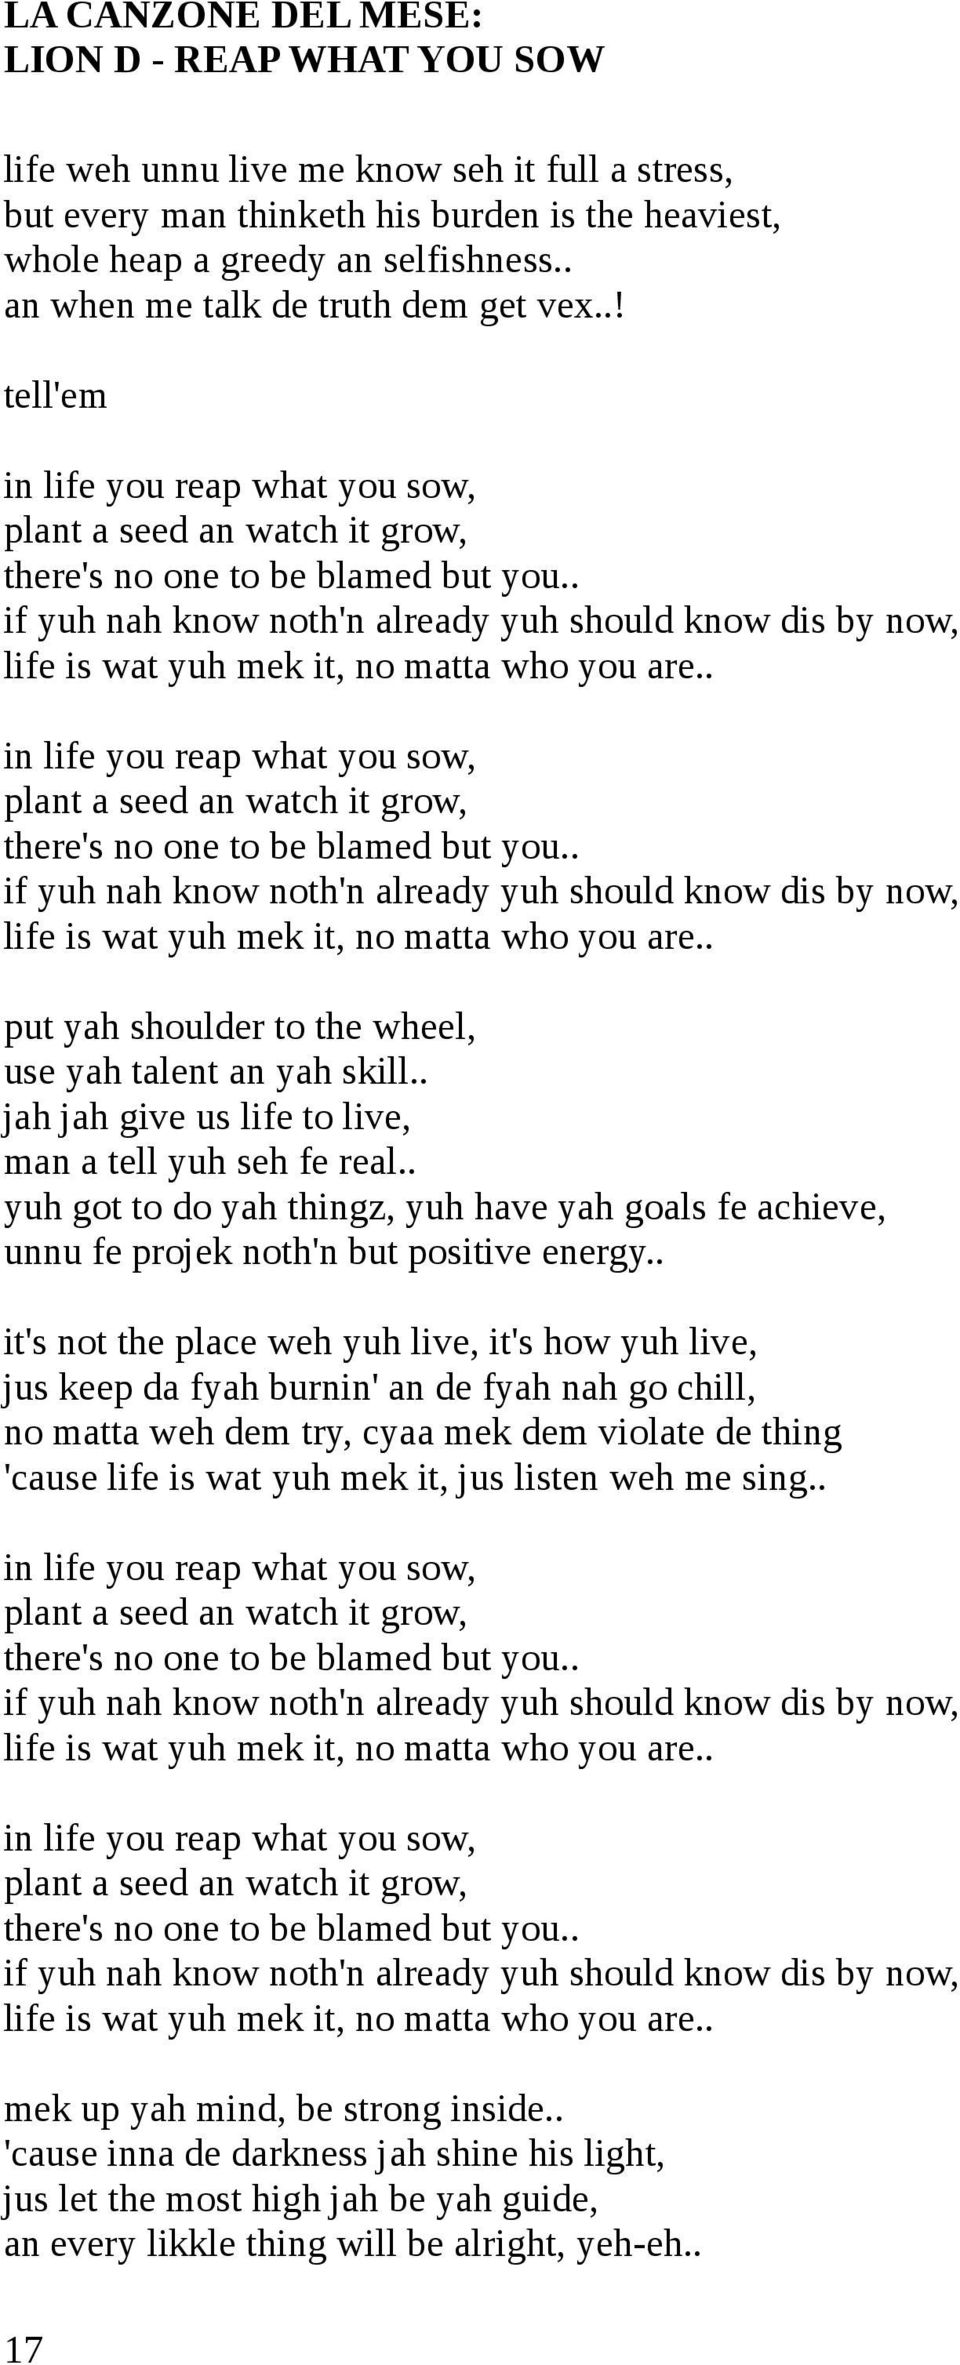 . if yuh nah know noth'n already yuh should know dis by now, life is wat yuh mek it, no matta who you are.